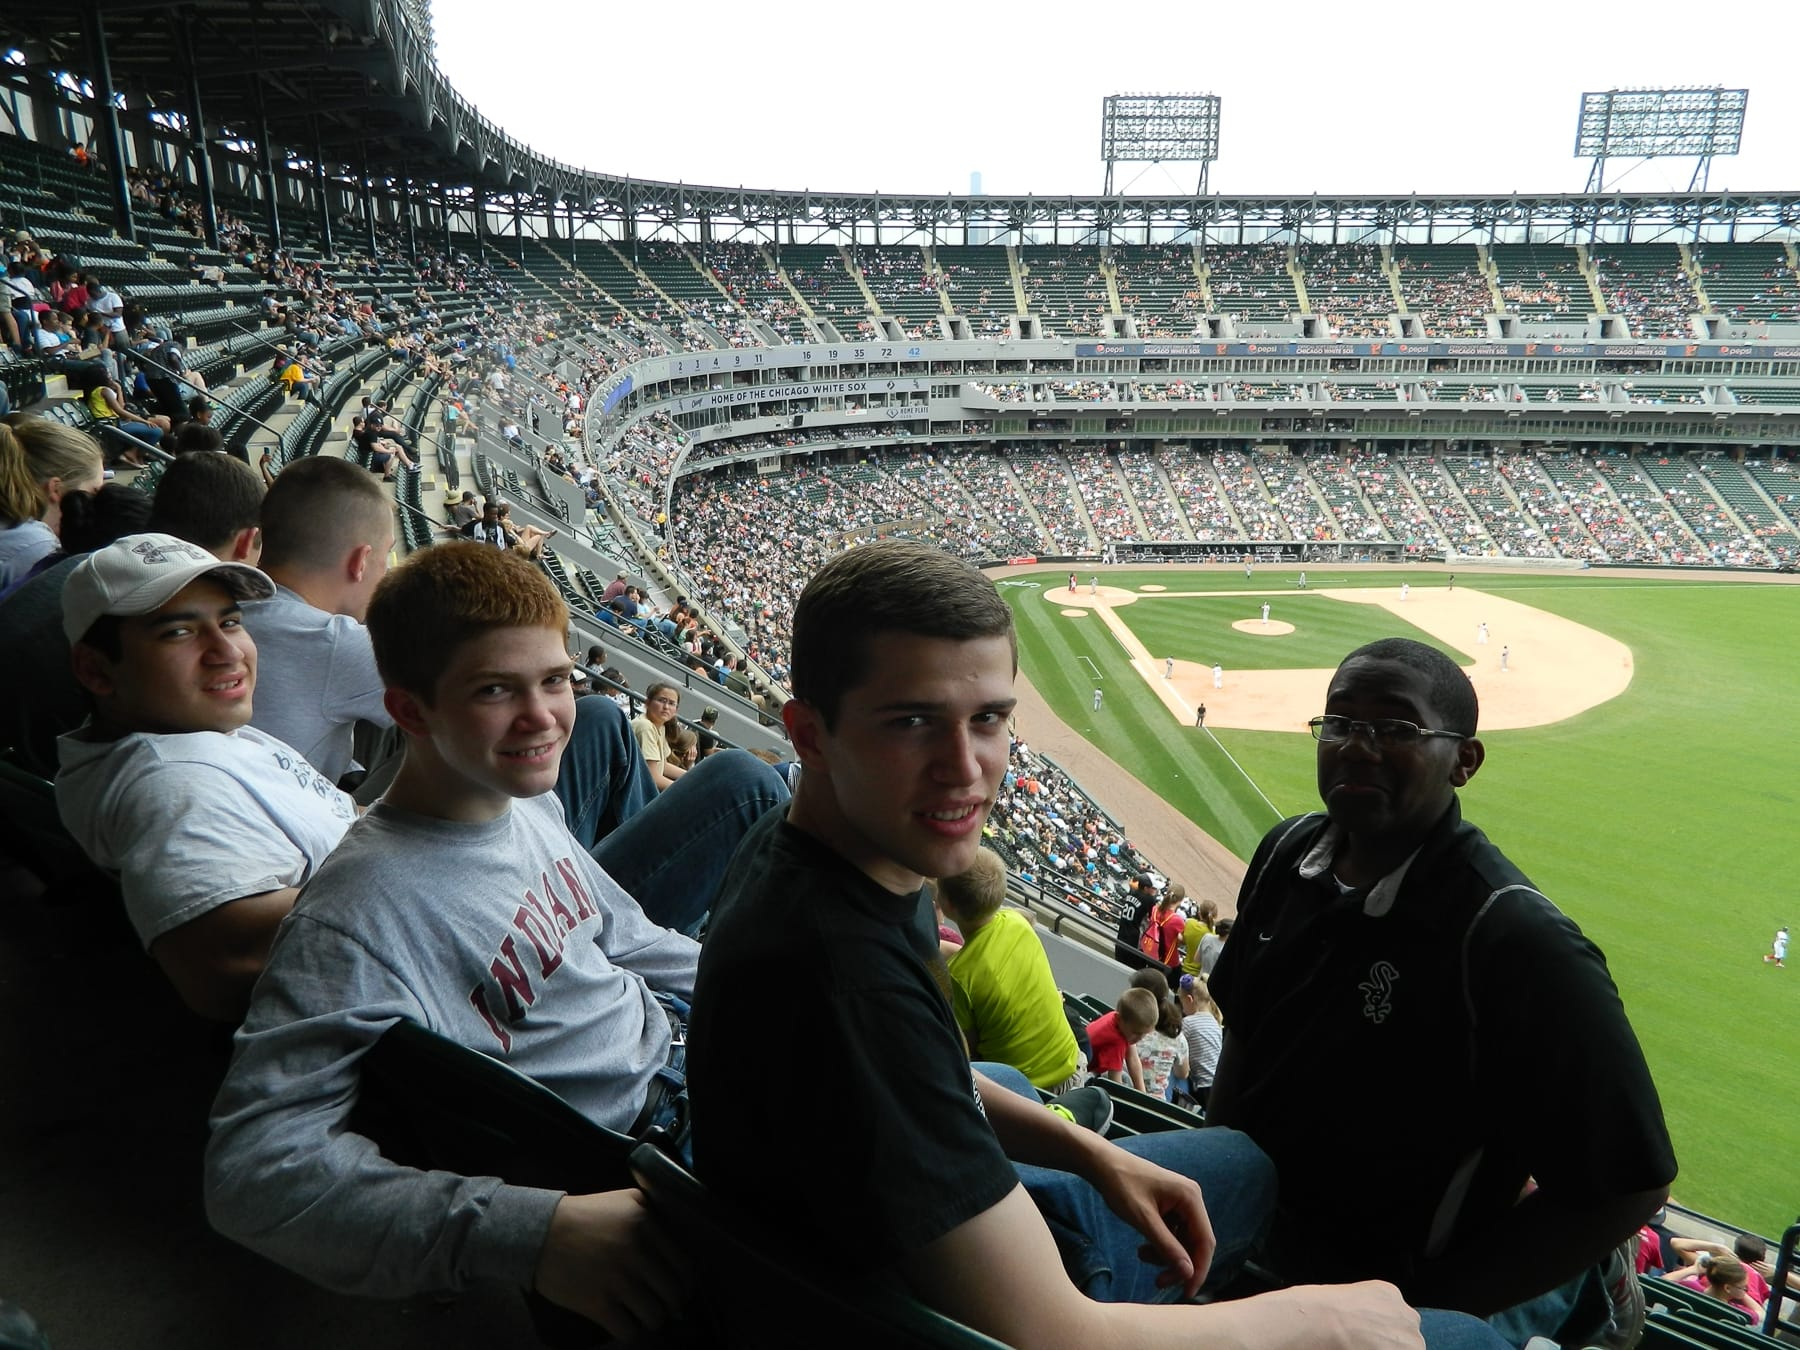 Fairhaven Baptist Academy White Sox Game 2015 (4 of 8)